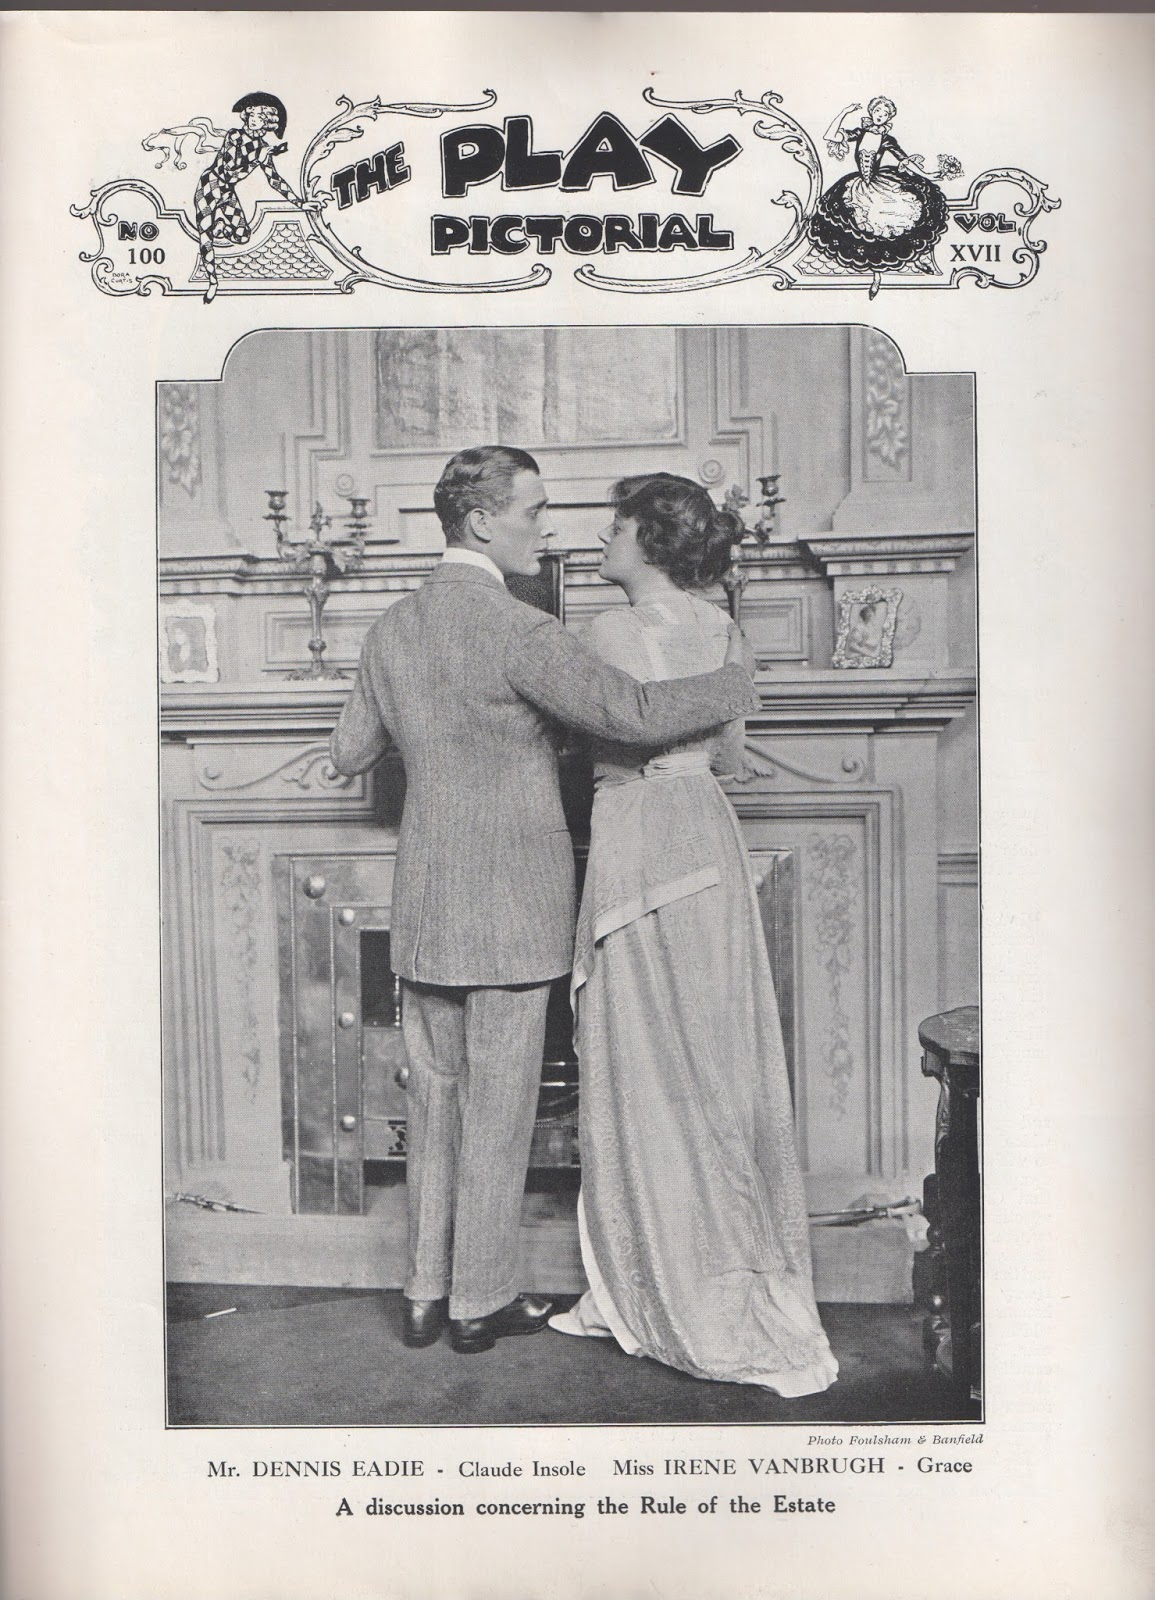 Dennis Eadie & Irene Vanbrugh as Claude & Grace Insoley